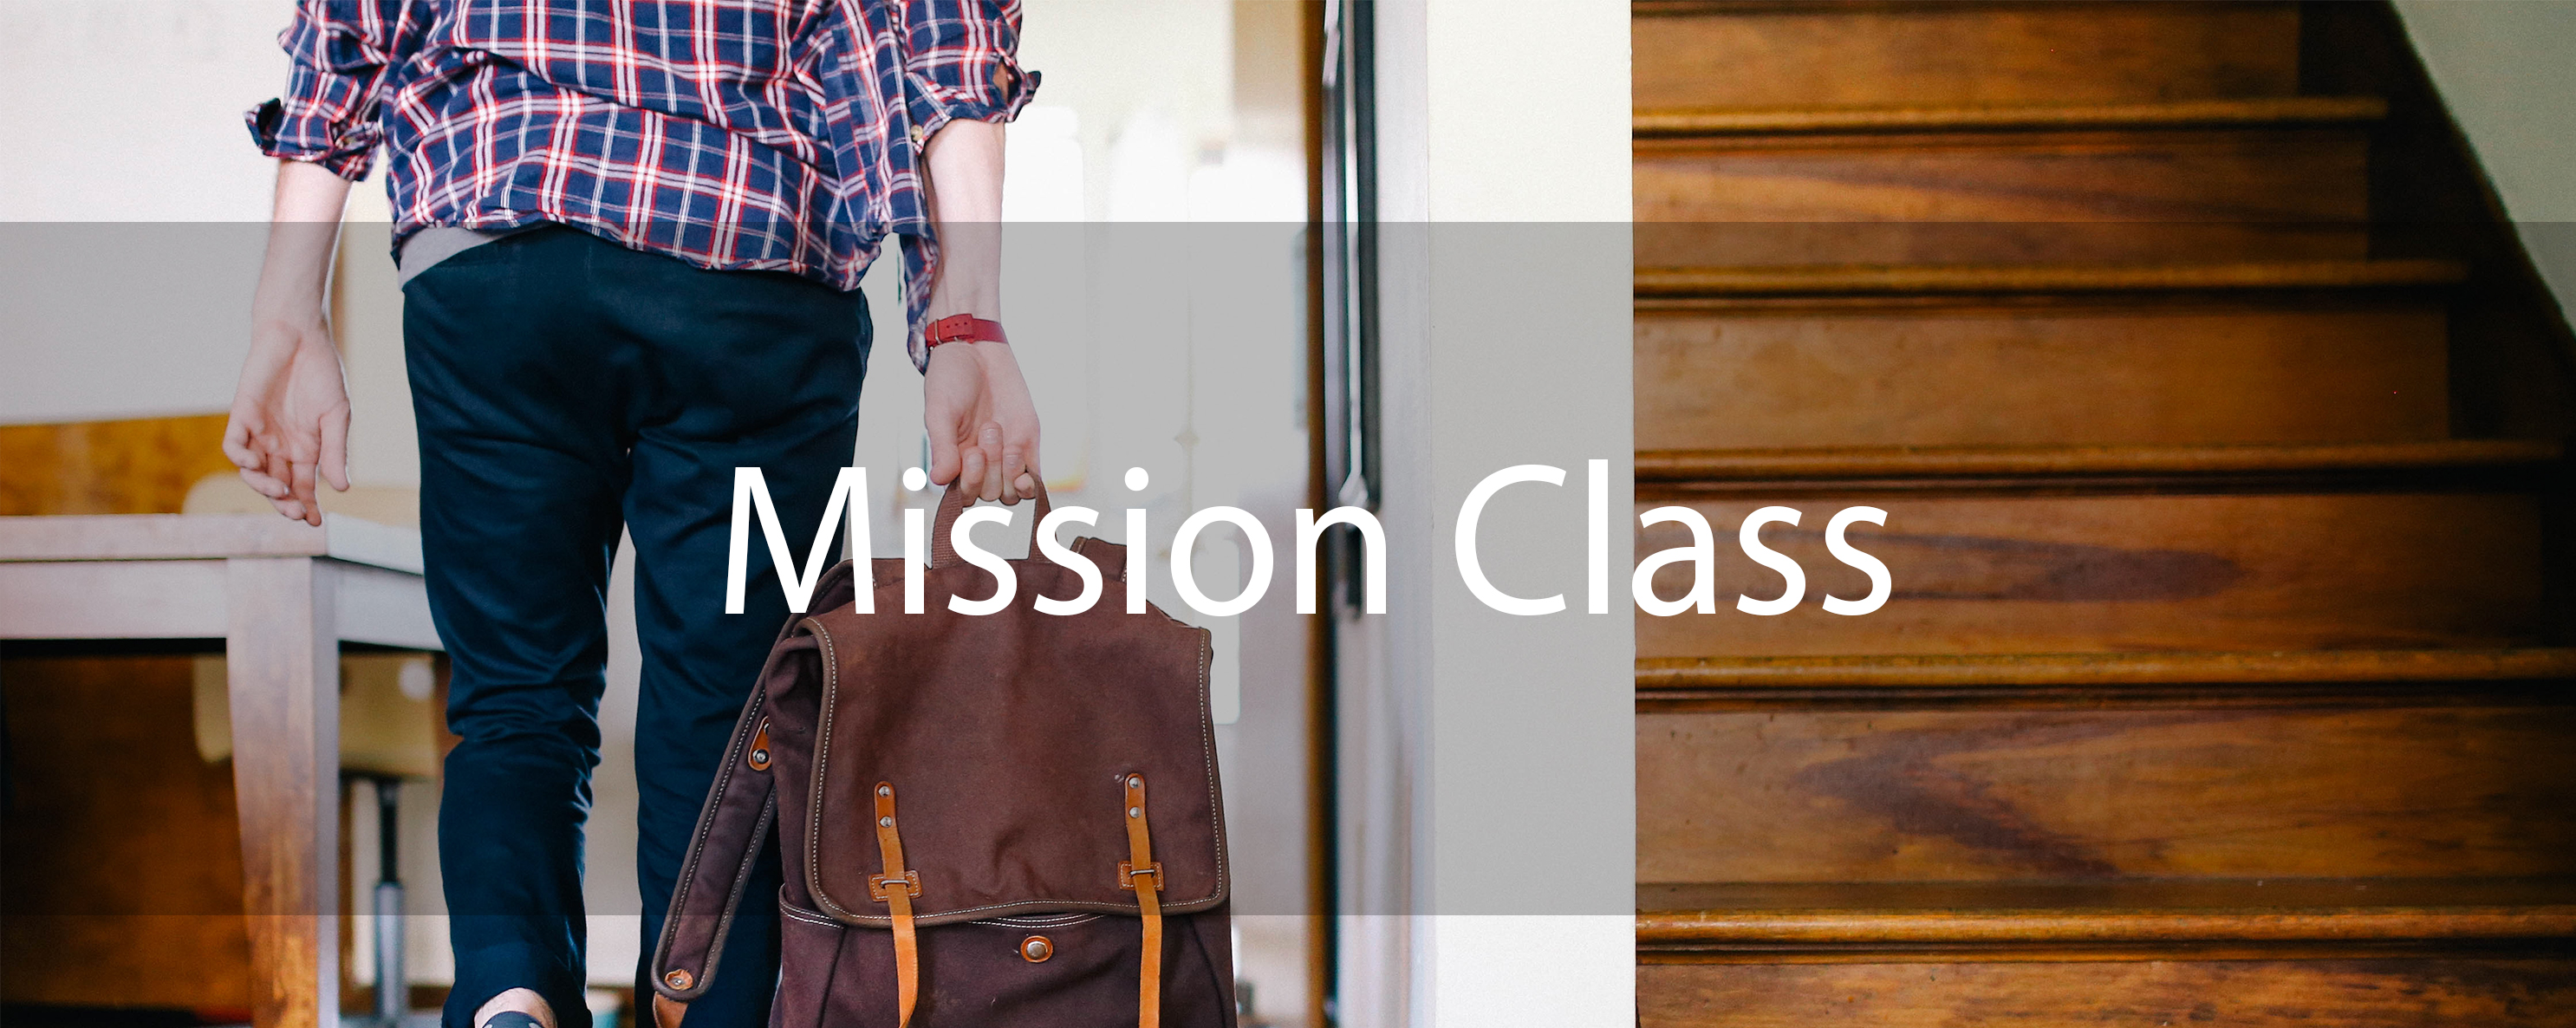 Mission Class image